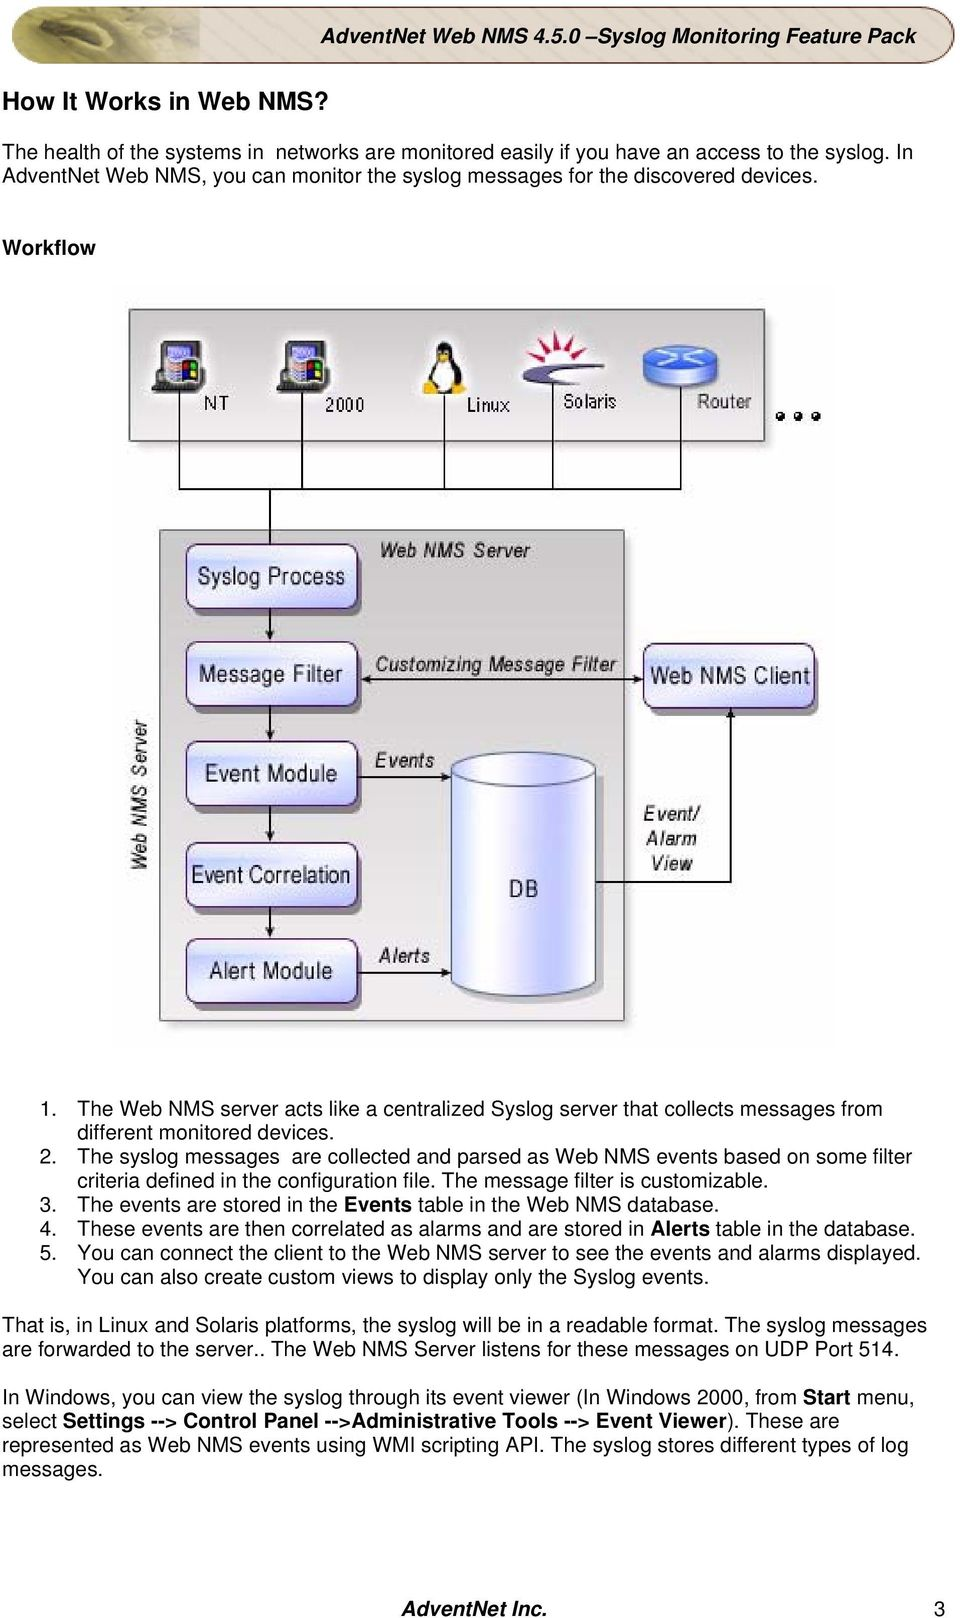 The Web NMS server acts like a centralized Syslog server that collects messages from different monitored devices. 2.